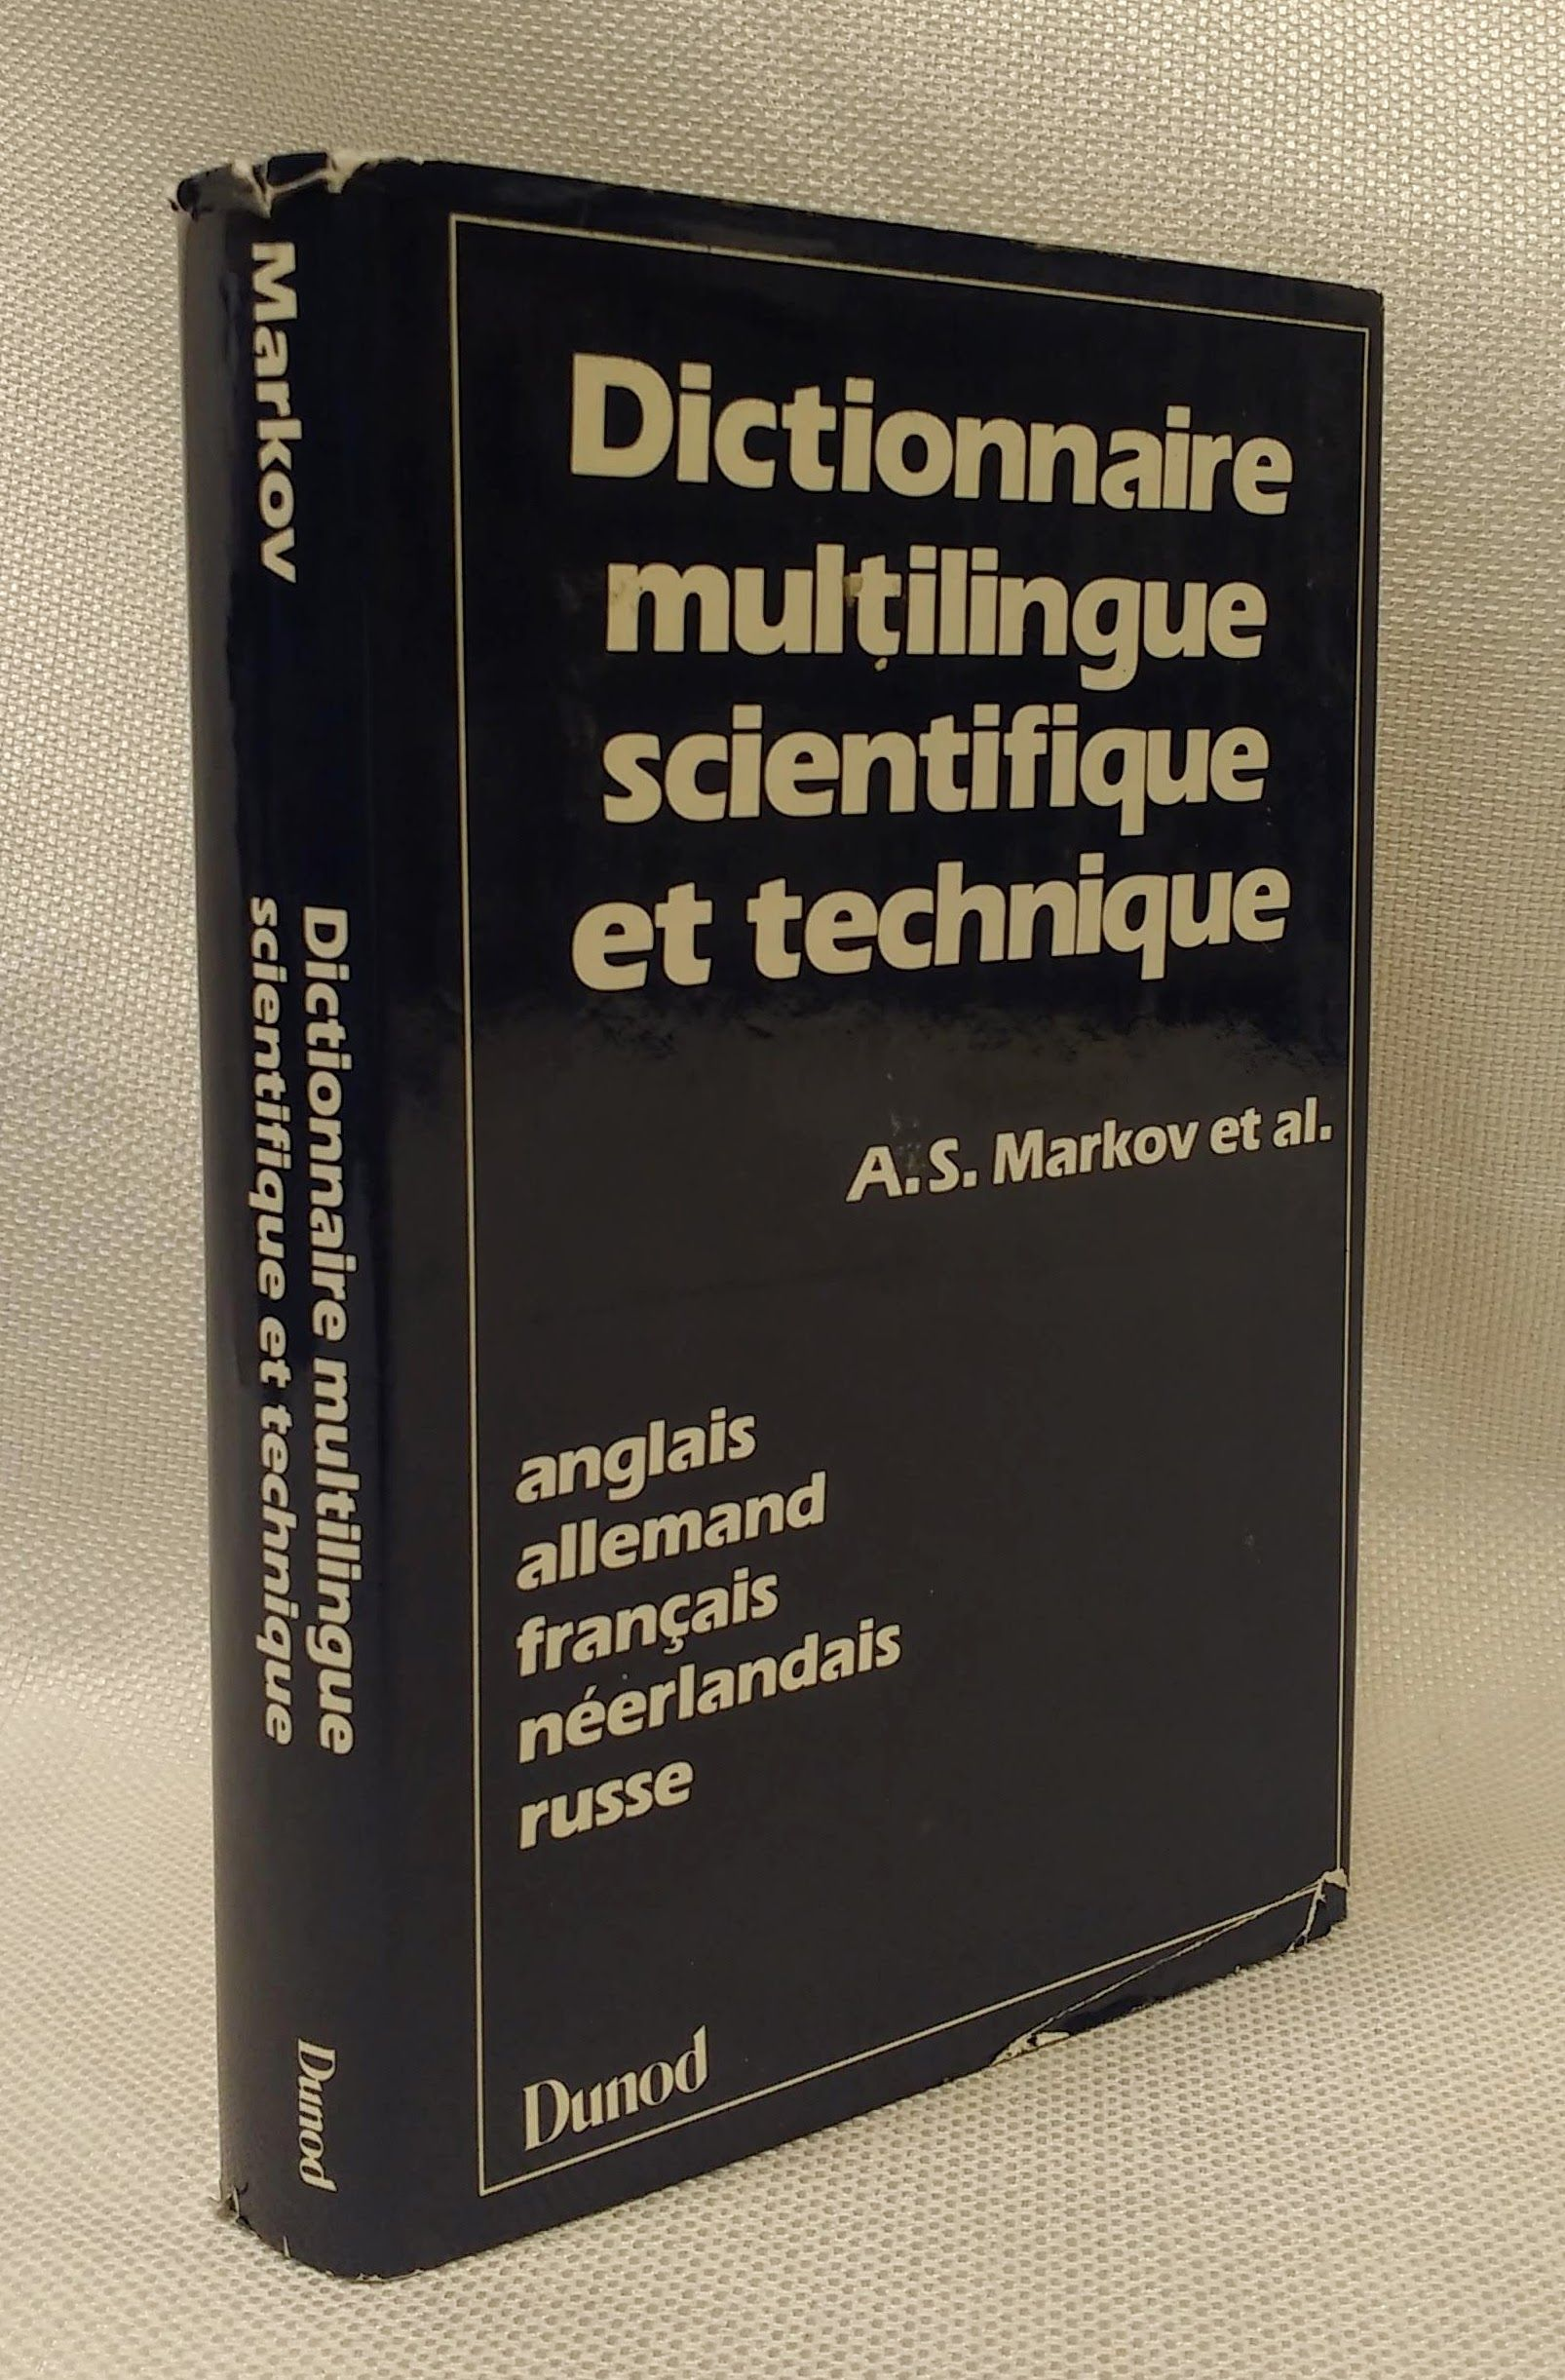 Dictionary of Scientific and Technical Terminology, Markov, A.S., et al.